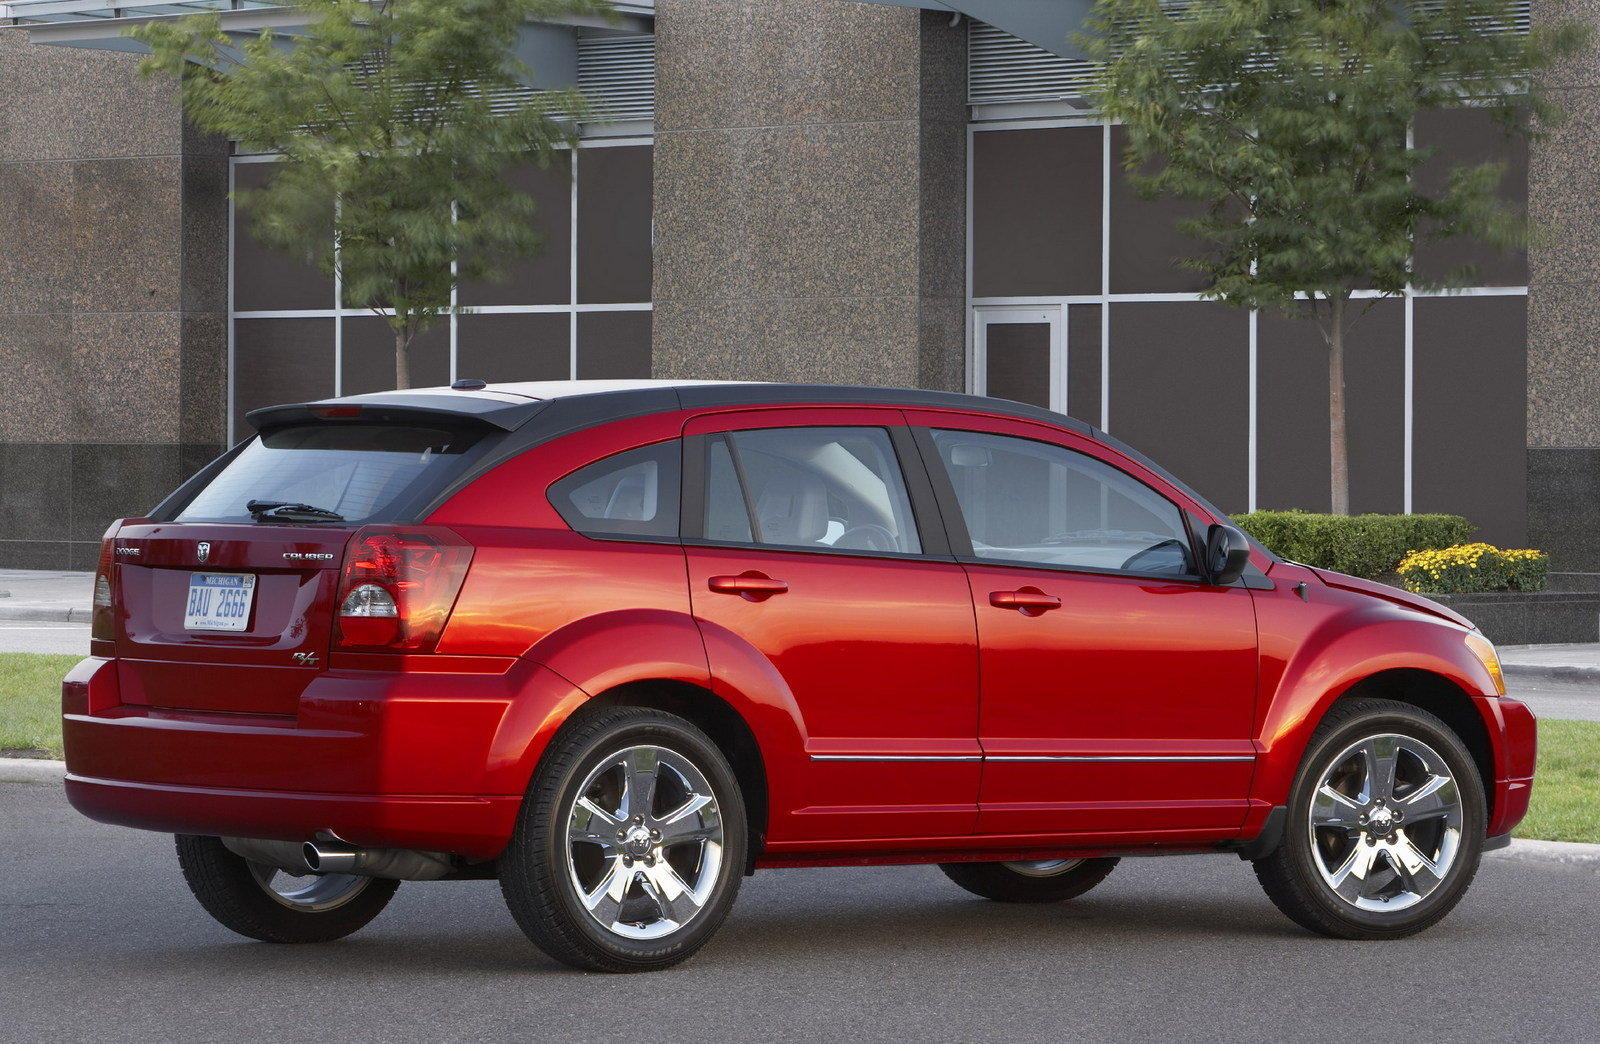 2011 dodge caliber picturesfind dodge caliber pics photos. Black Bedroom Furniture Sets. Home Design Ideas